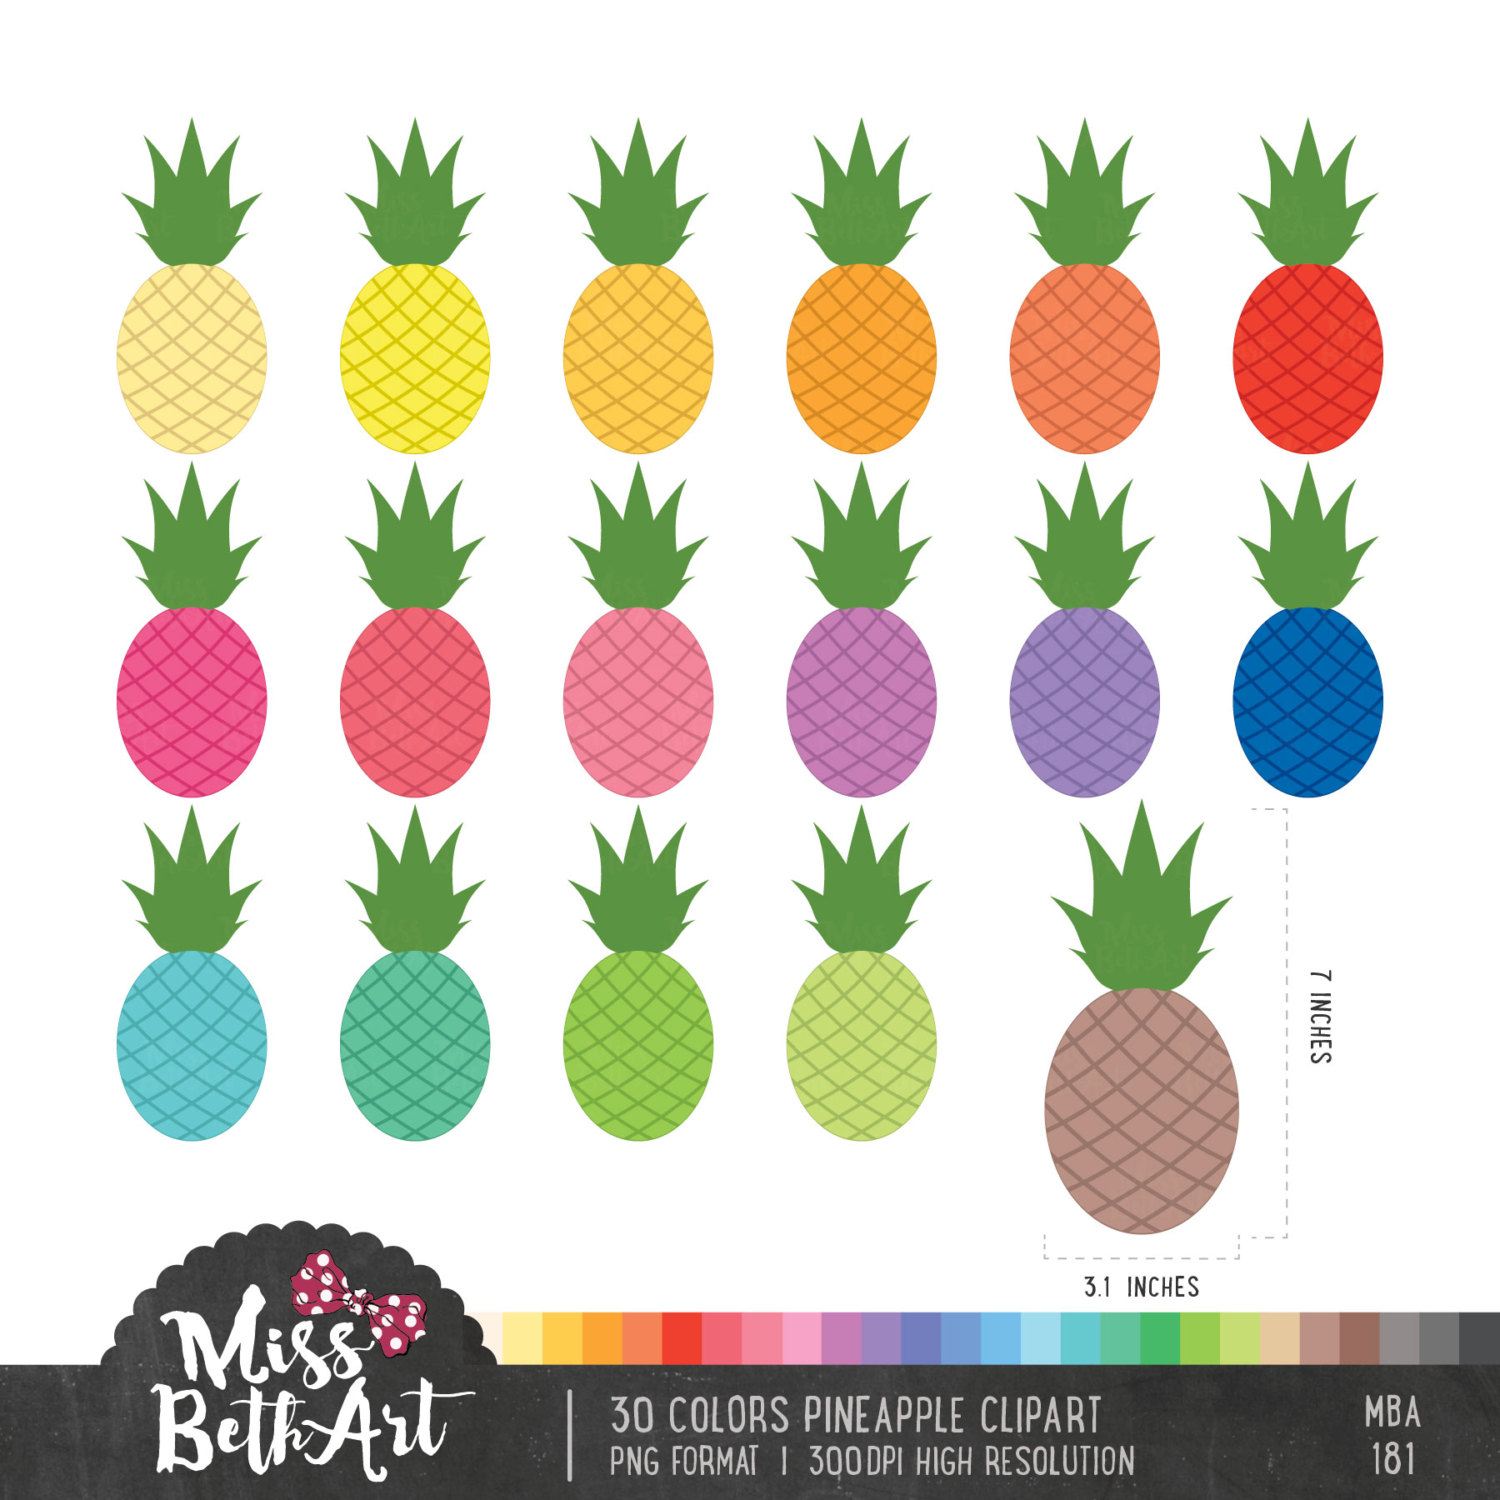 30 Colors Pineapple Clipart.